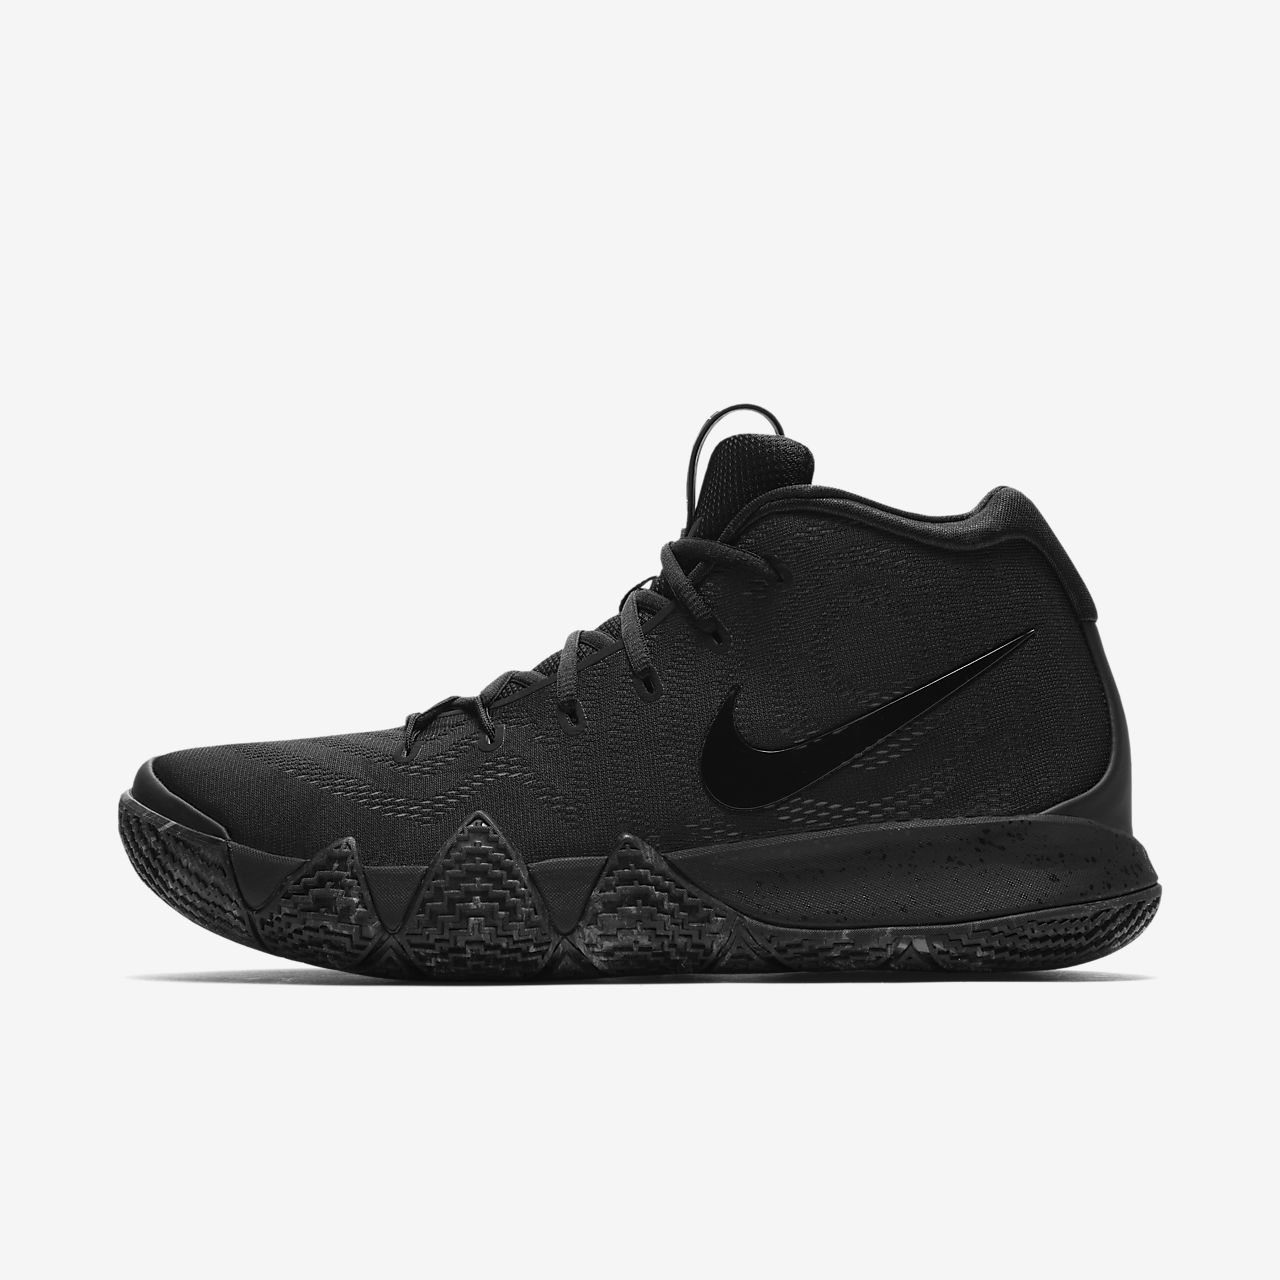 9d486f83eb2 Low Resolution Kyrie 4 Basketball Shoe Kyrie 4 Basketball Shoe